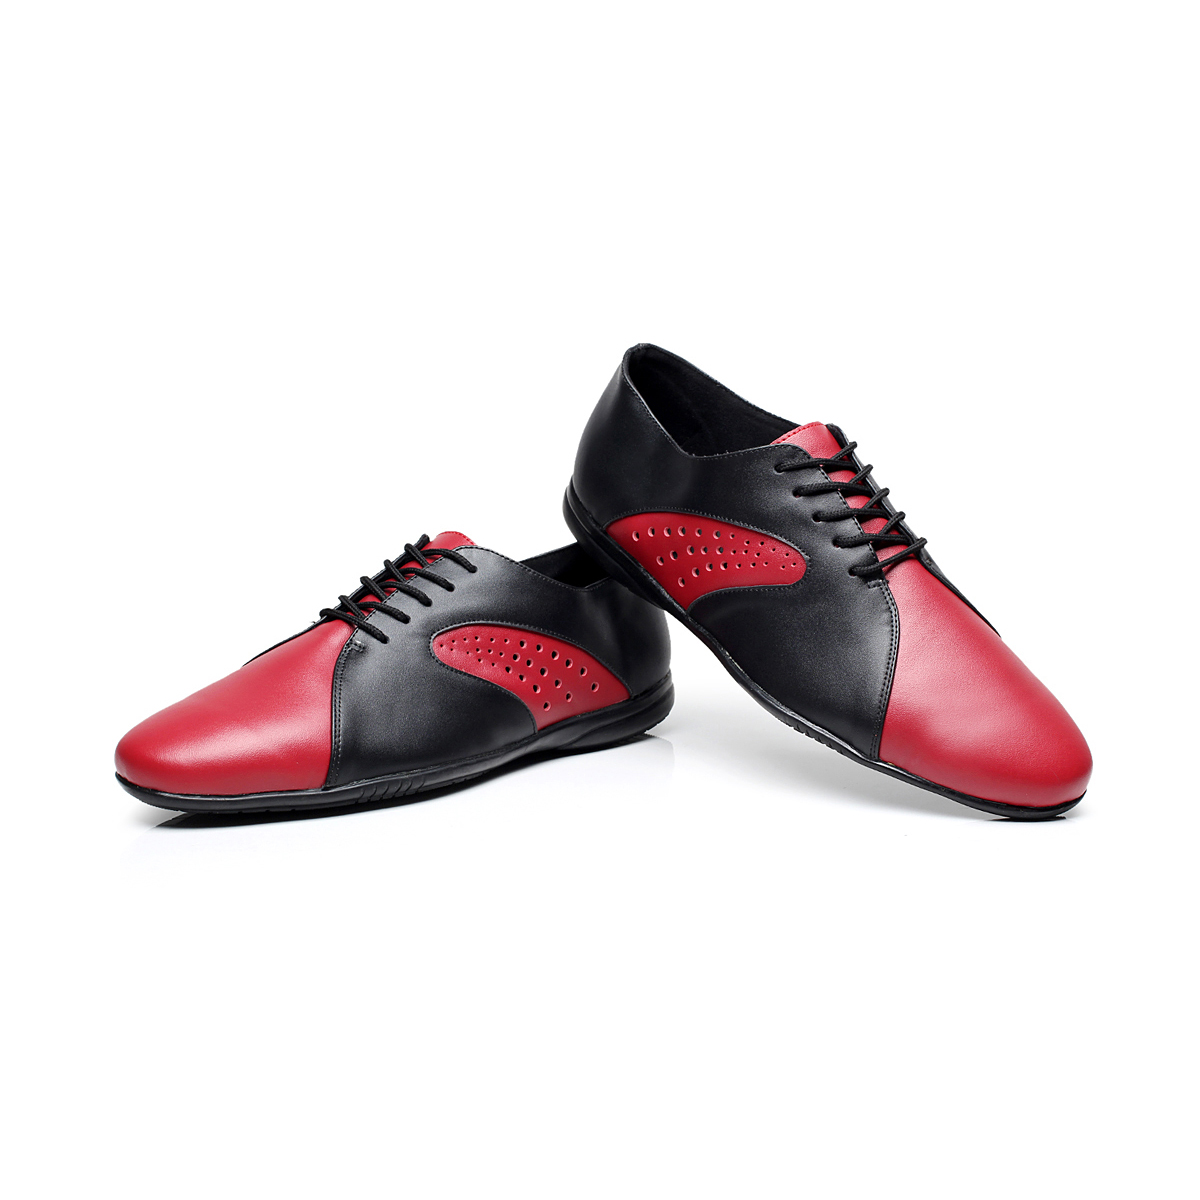 Genuine Leather Men s Latin Dance Shoes Rubber sole Male Black Red Square Latin Shoes Flat